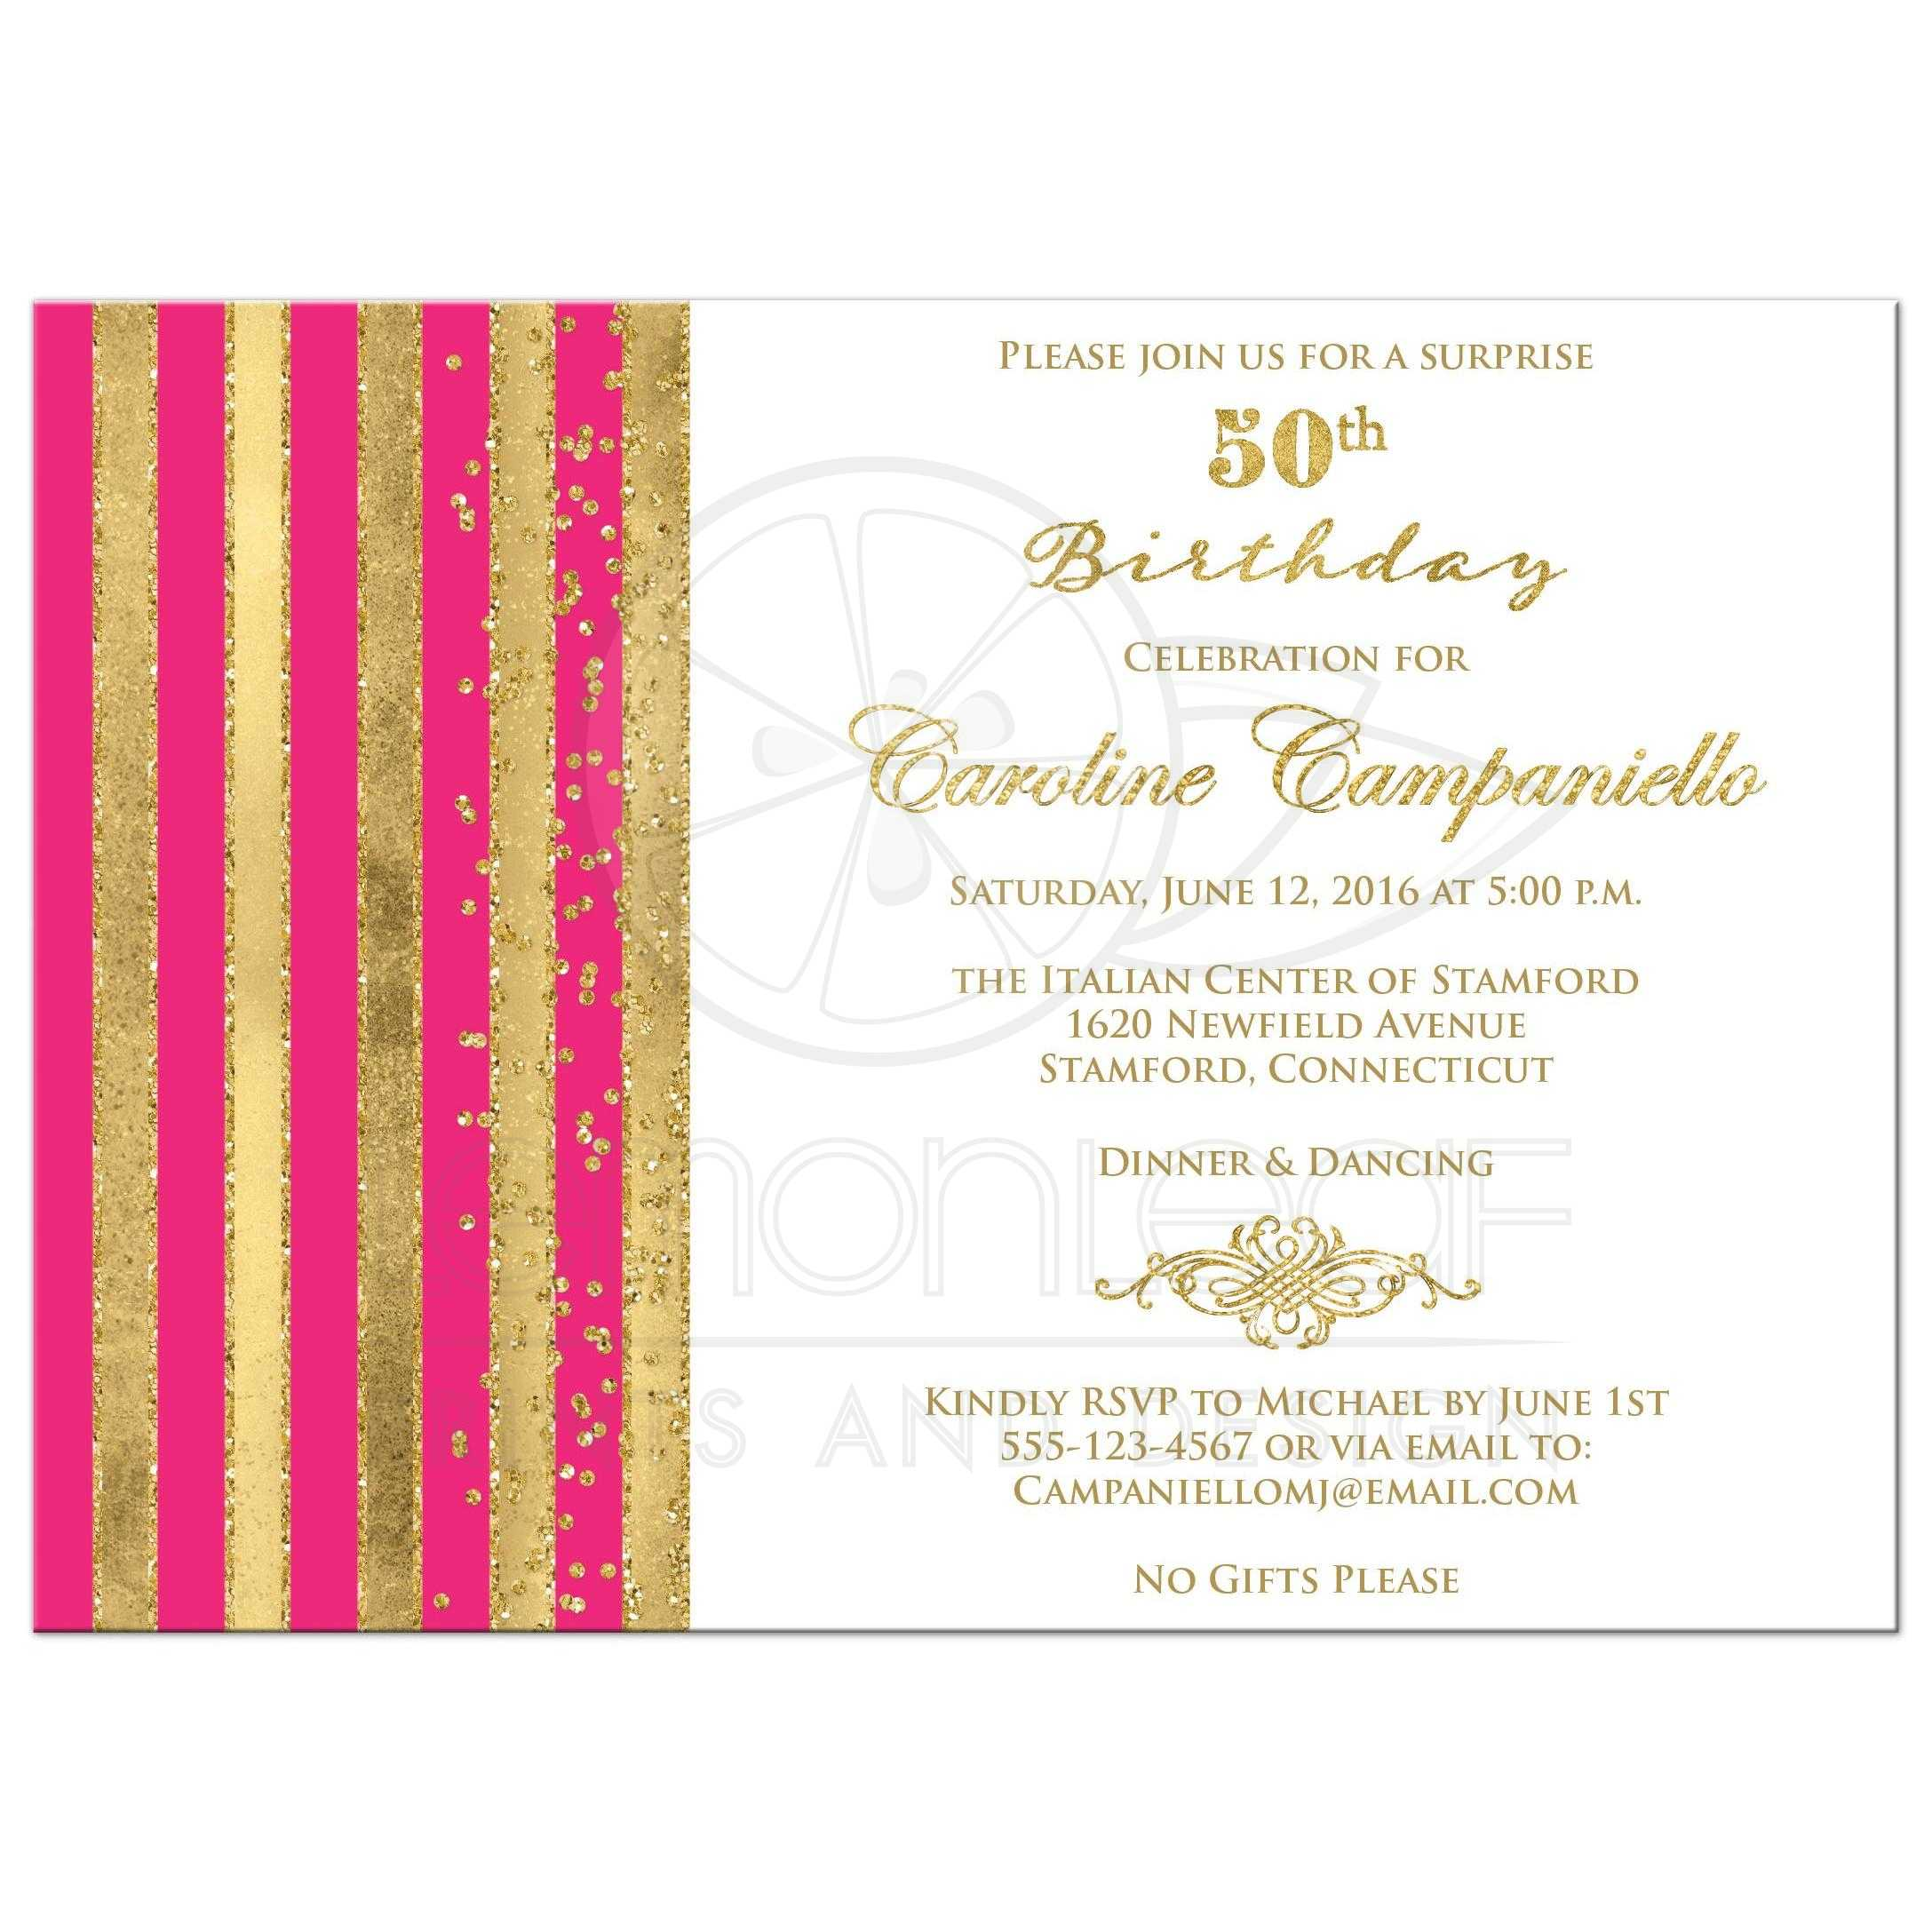 50th birthday invitation hot pink white gold stripes faux great elegant hot fuchsia pink and white 50th birthday party invitation with faux gold foil stripes filmwisefo